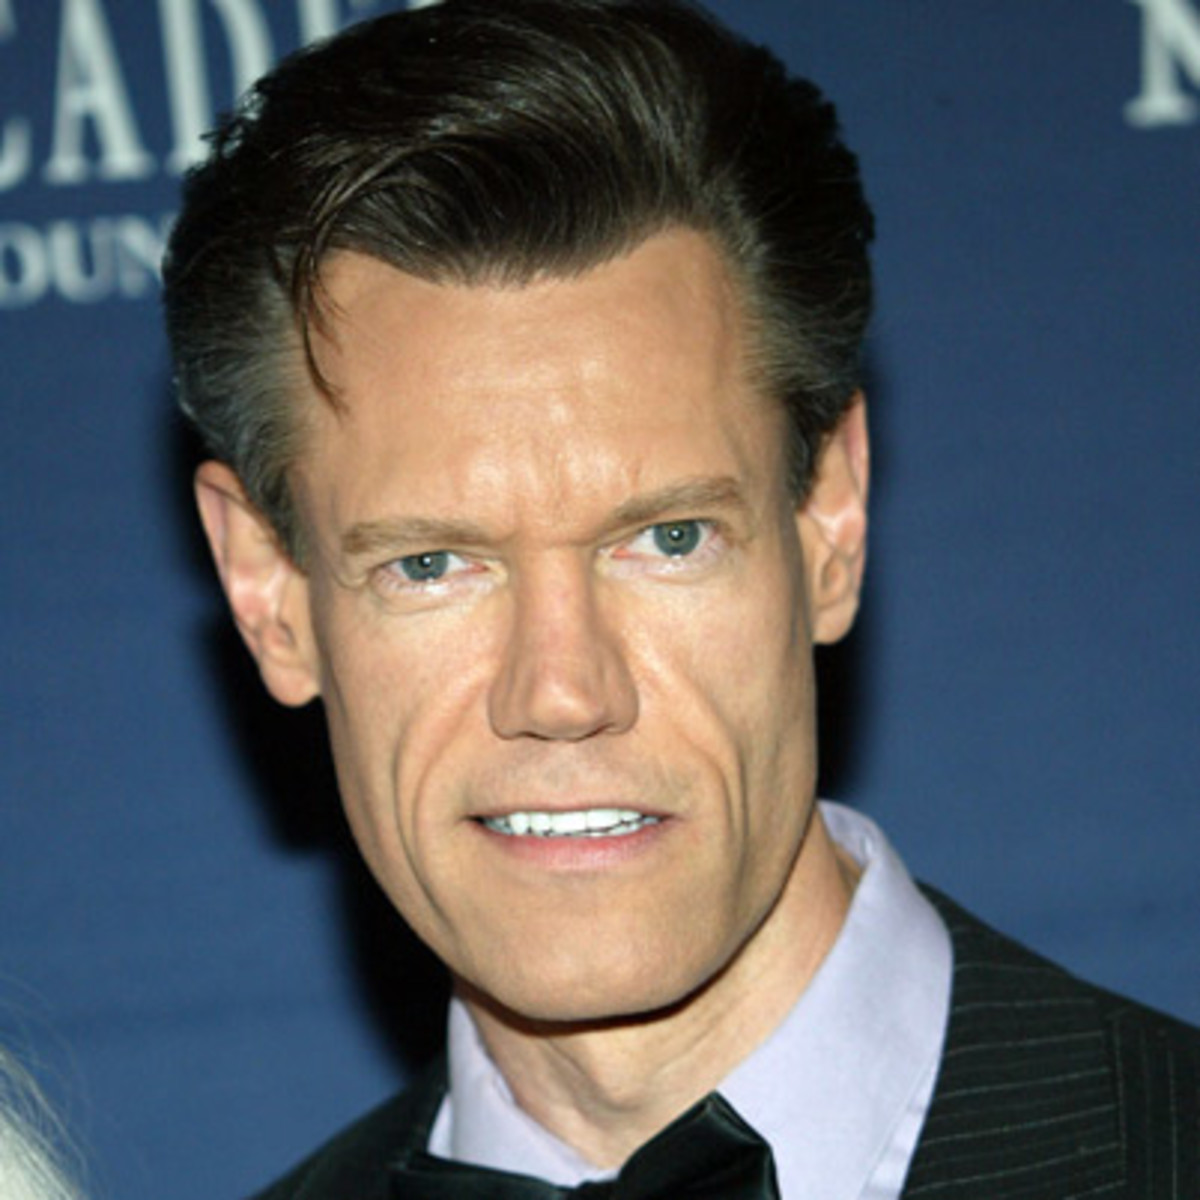 Randy Travis photo via Getty Images